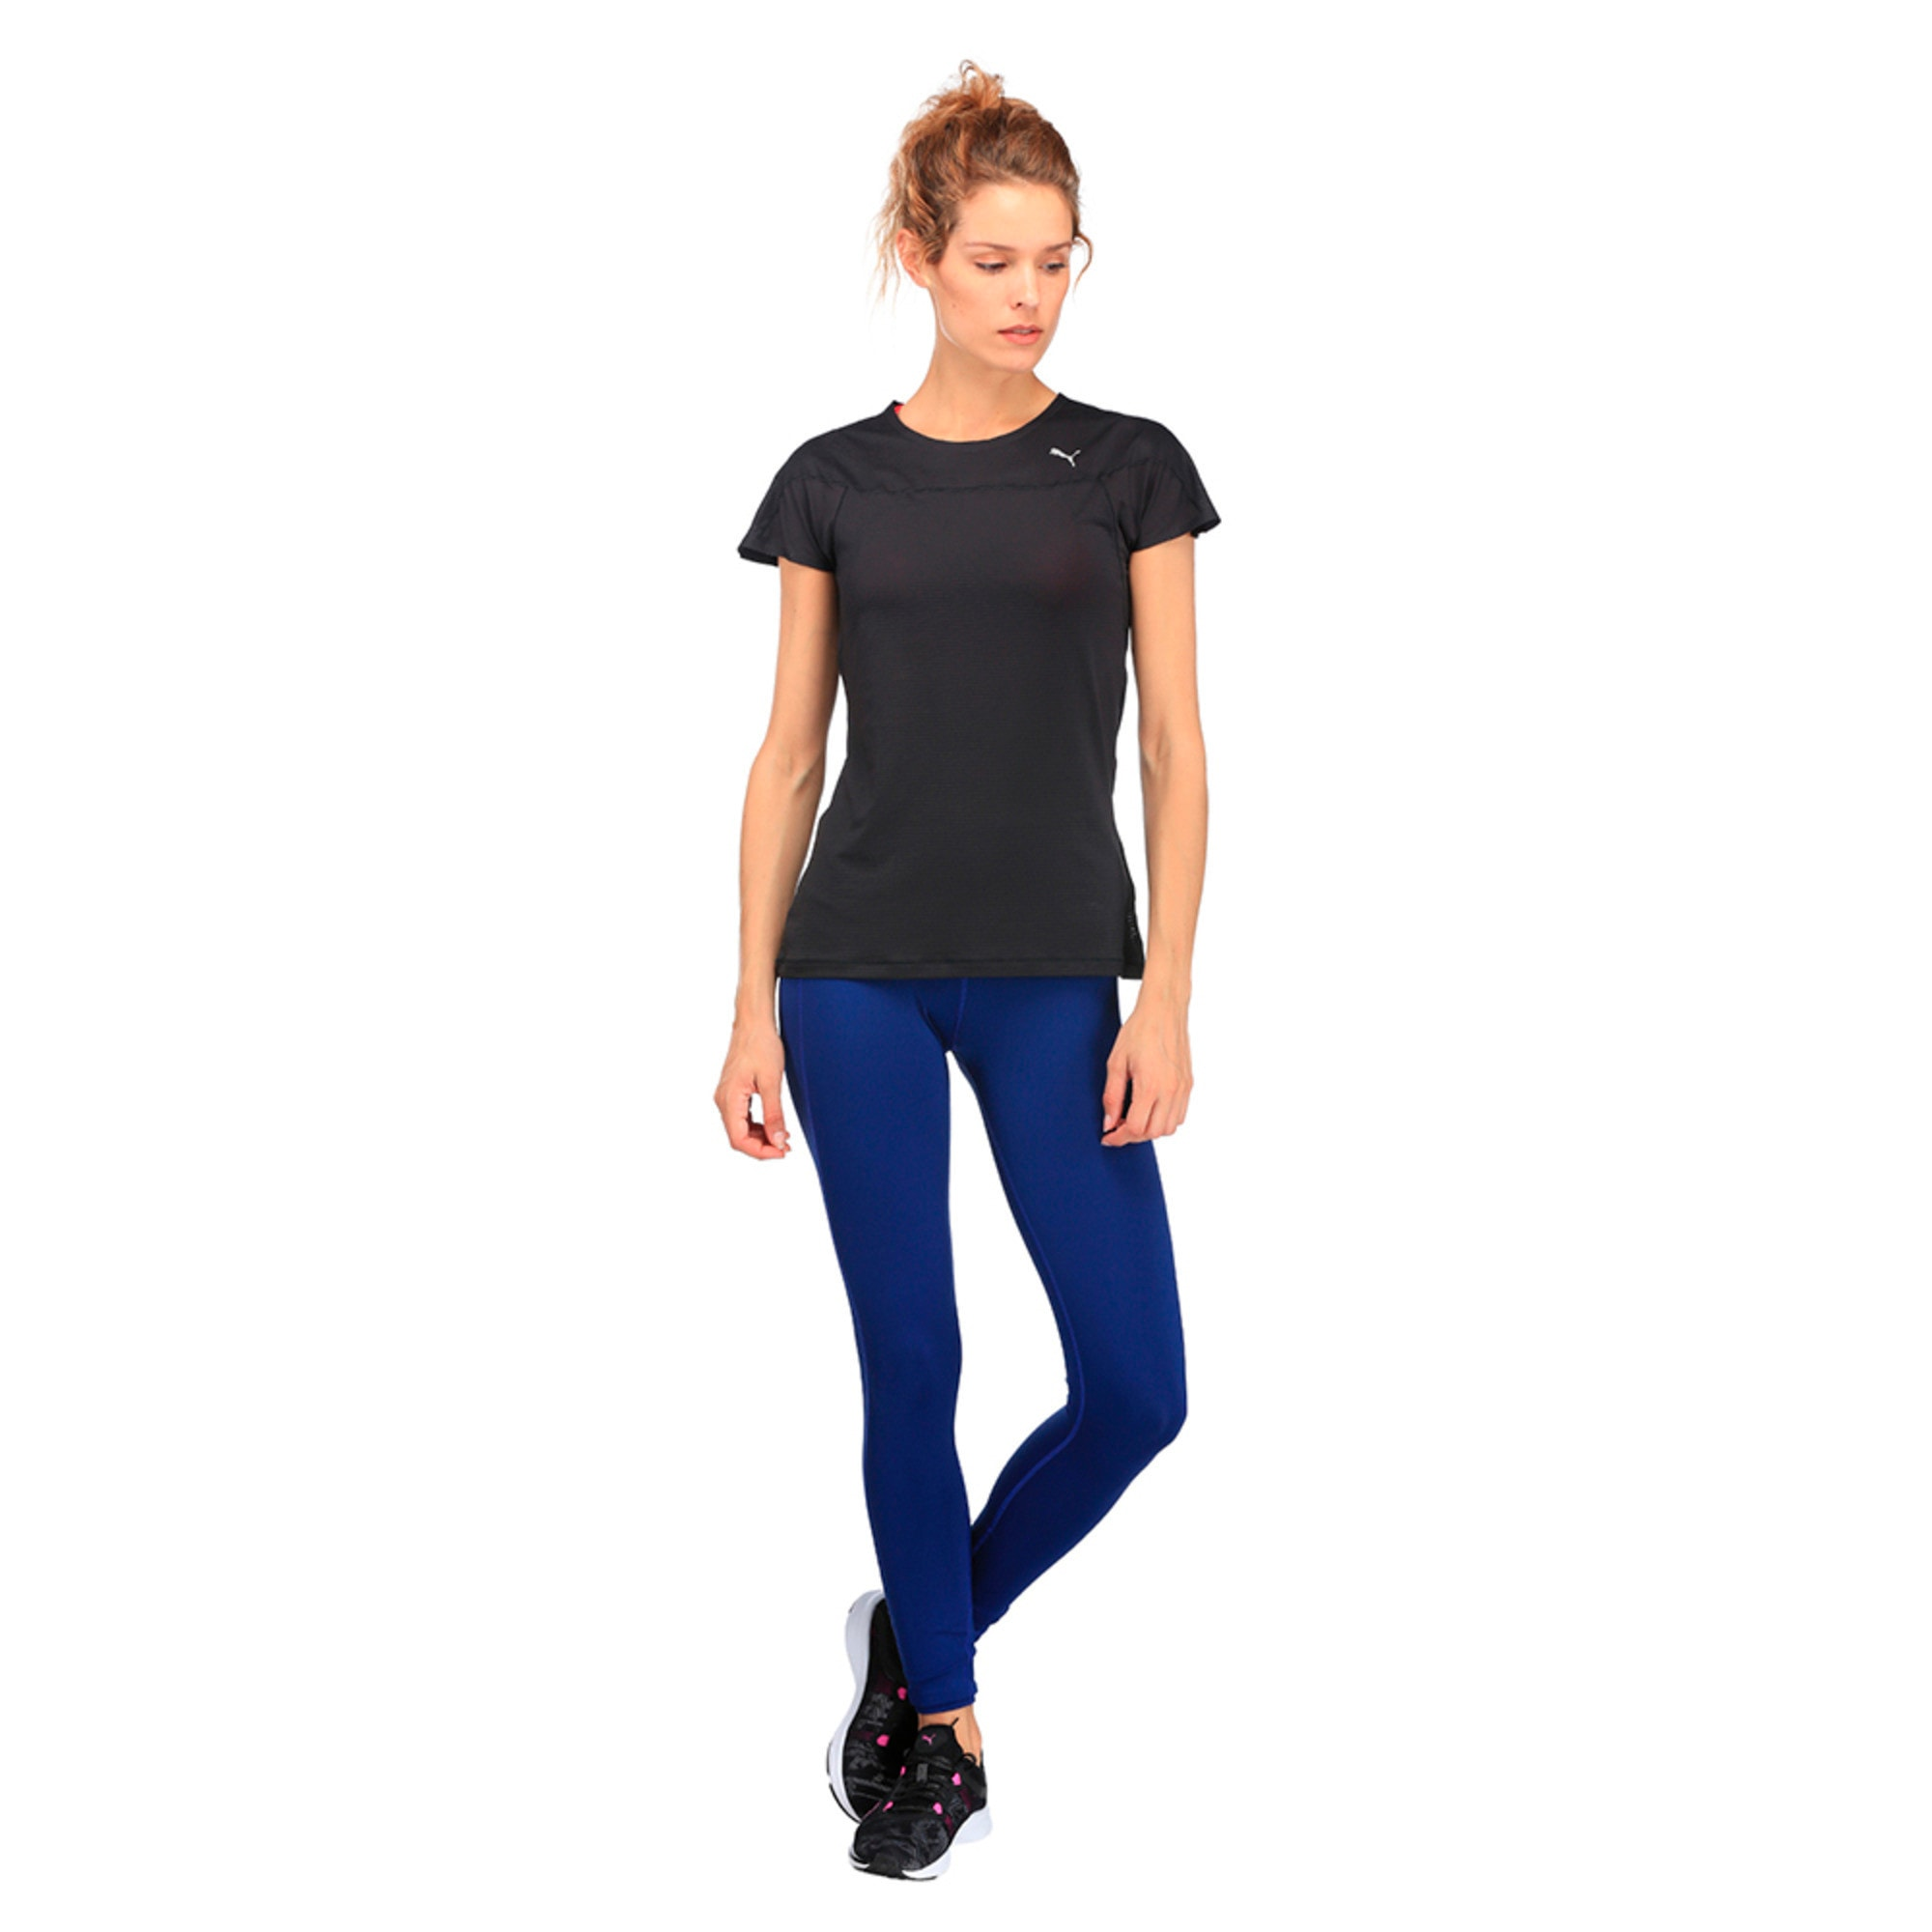 Thumbnail 2 of Running Women's Speed T-Shirt, Puma Black, medium-IND